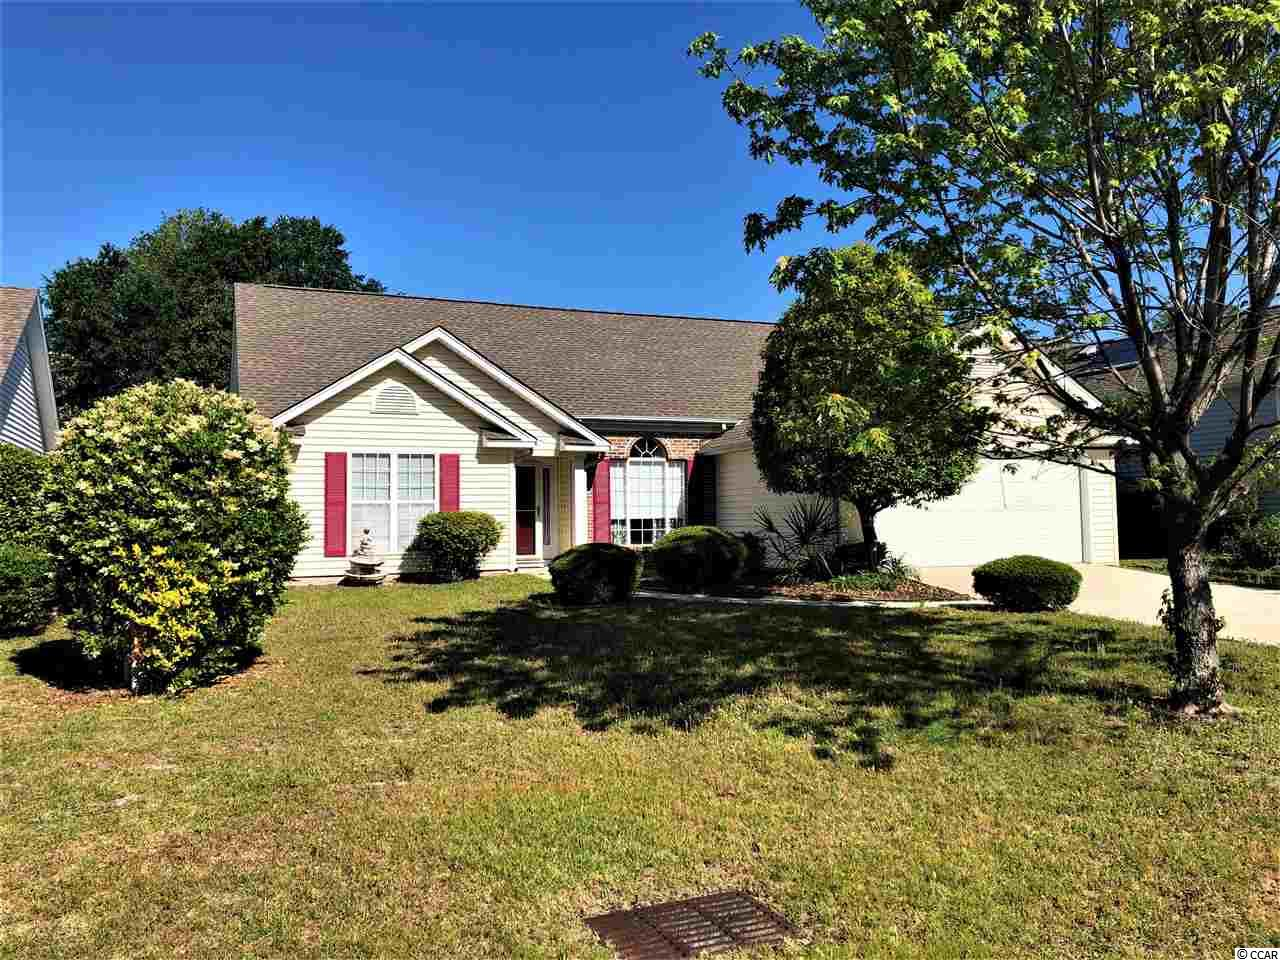 Plenty of space and a short ride to the beach from this 3 bedroom and 2 bath home in Ashton Glenn.  Lots of space in this one.  Large kitchen with lots of cabinet and counters, and living space combo plus the main living room and formal dining area.  Master suite with a large bathroom and walk-in closet in the back, and two guest bedrooms in the front.  Laundry room leading to a large two car garage, plus attic storage above.  Back patio with a retractable awning offering plenty of space for entertainment.  Community pool and just a couple of miles to the sand in Surfside Beach.  Make this one home today!